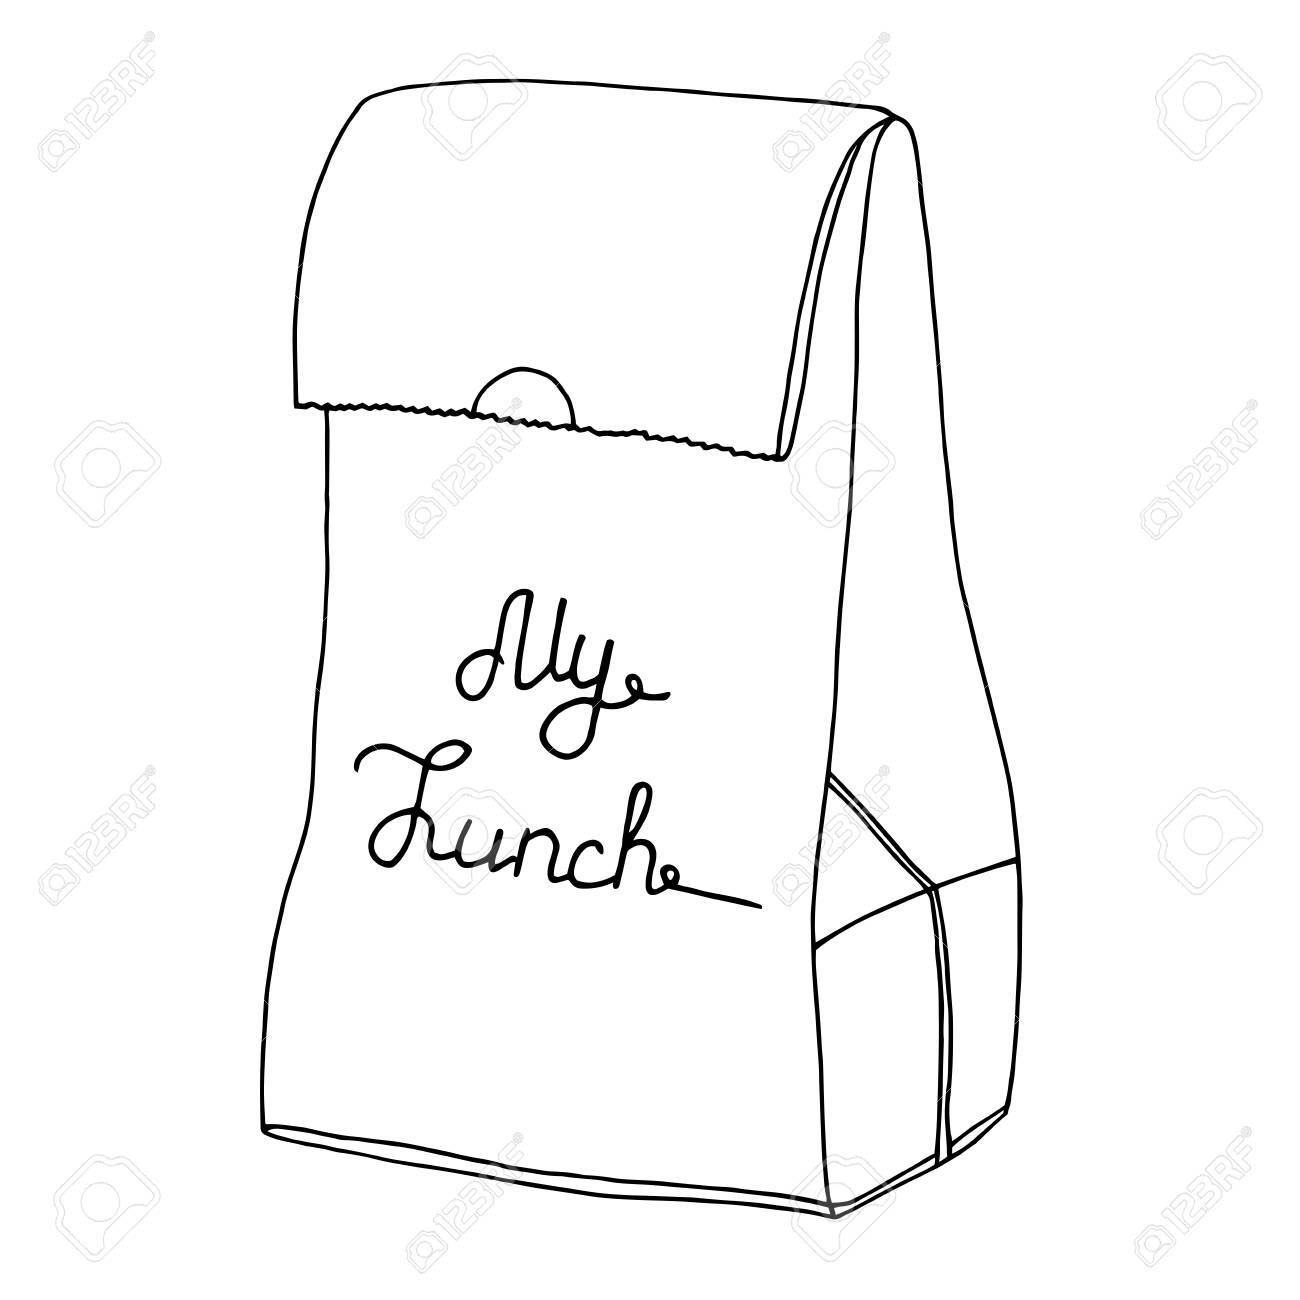 1300x1300 My Lunch. Food Bag, Lunch Bag, Lunchbox. Hand Drawn Artisitc